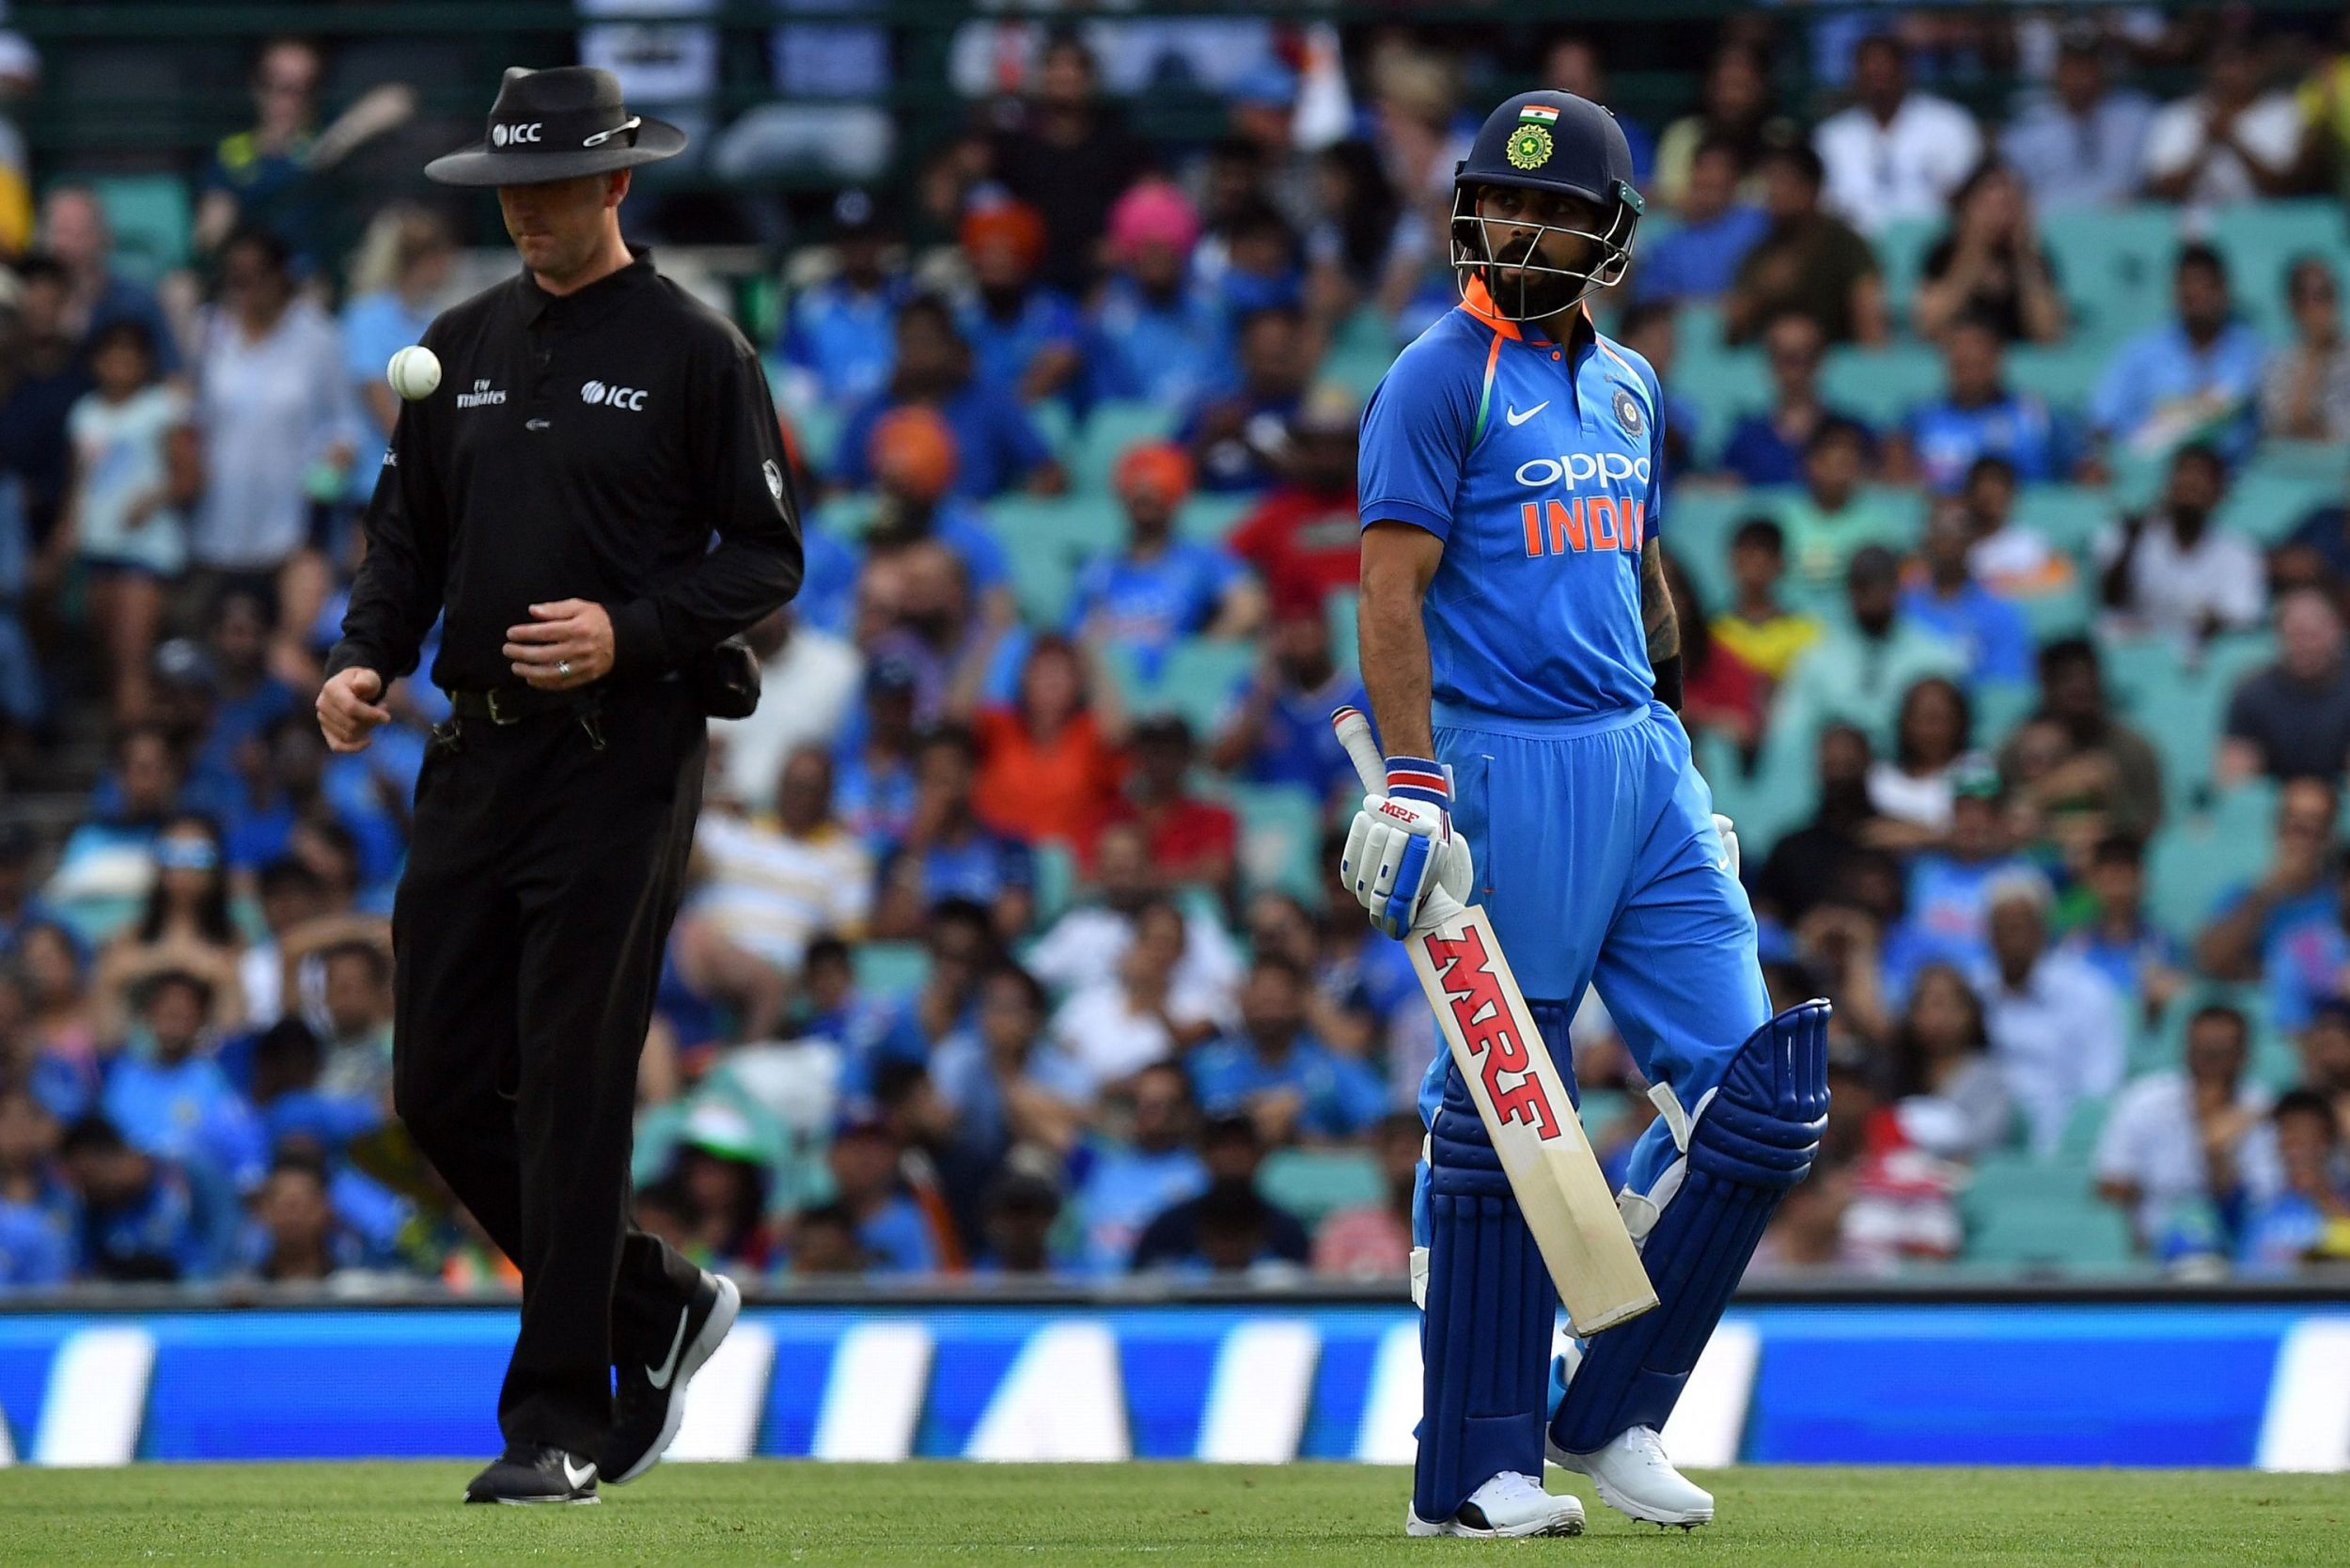 India's captain Virhat Kohli (R) walks back to the pavilion after his dismissal during the first one-day international (ODI) match between Australia and India at the Sydney Cricket Ground in Sydney on January 12, 2019. (Photo by Saeed Khan / AFP) / -- IMAGE RESTRICTED TO EDITORIAL USE - STRICTLY NO COMMERCIAL USE --SAEED KHAN/AFP/Getty Images